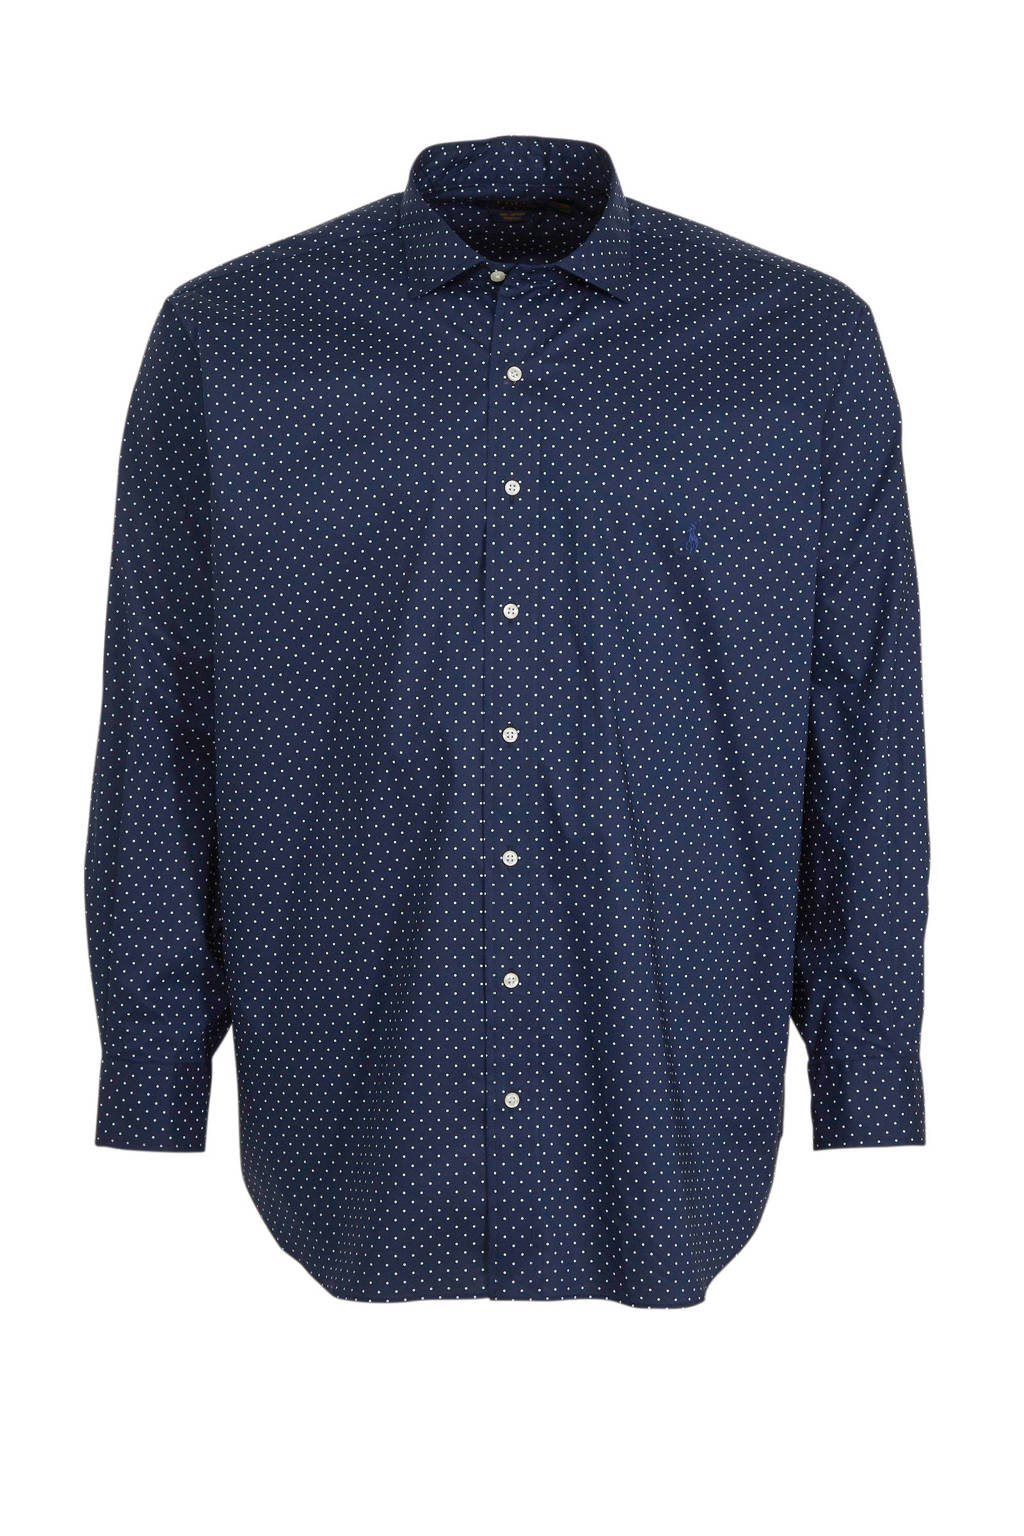 POLO Ralph Lauren Big & Tall +size regular fit overhemd met all over print donkerblauw, Donkerblauw